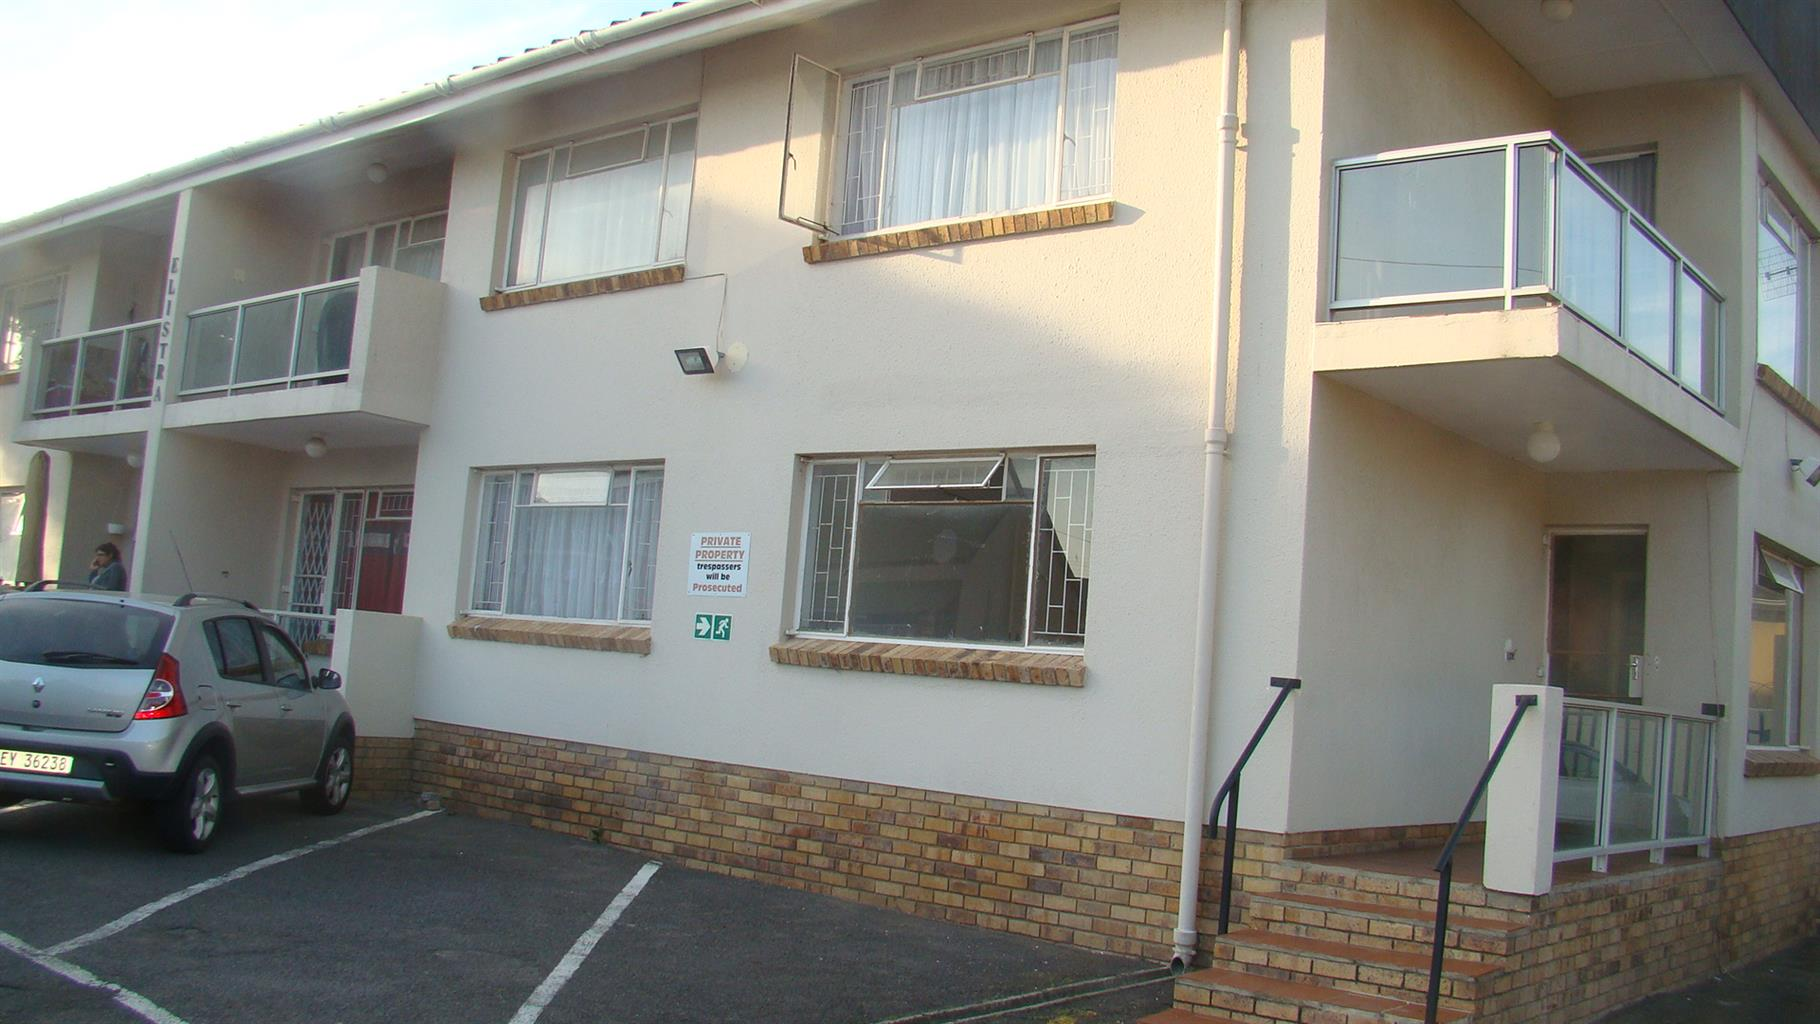 ONE BEDROOMED APARTMENT TO RENT IN STRAND SOUTH